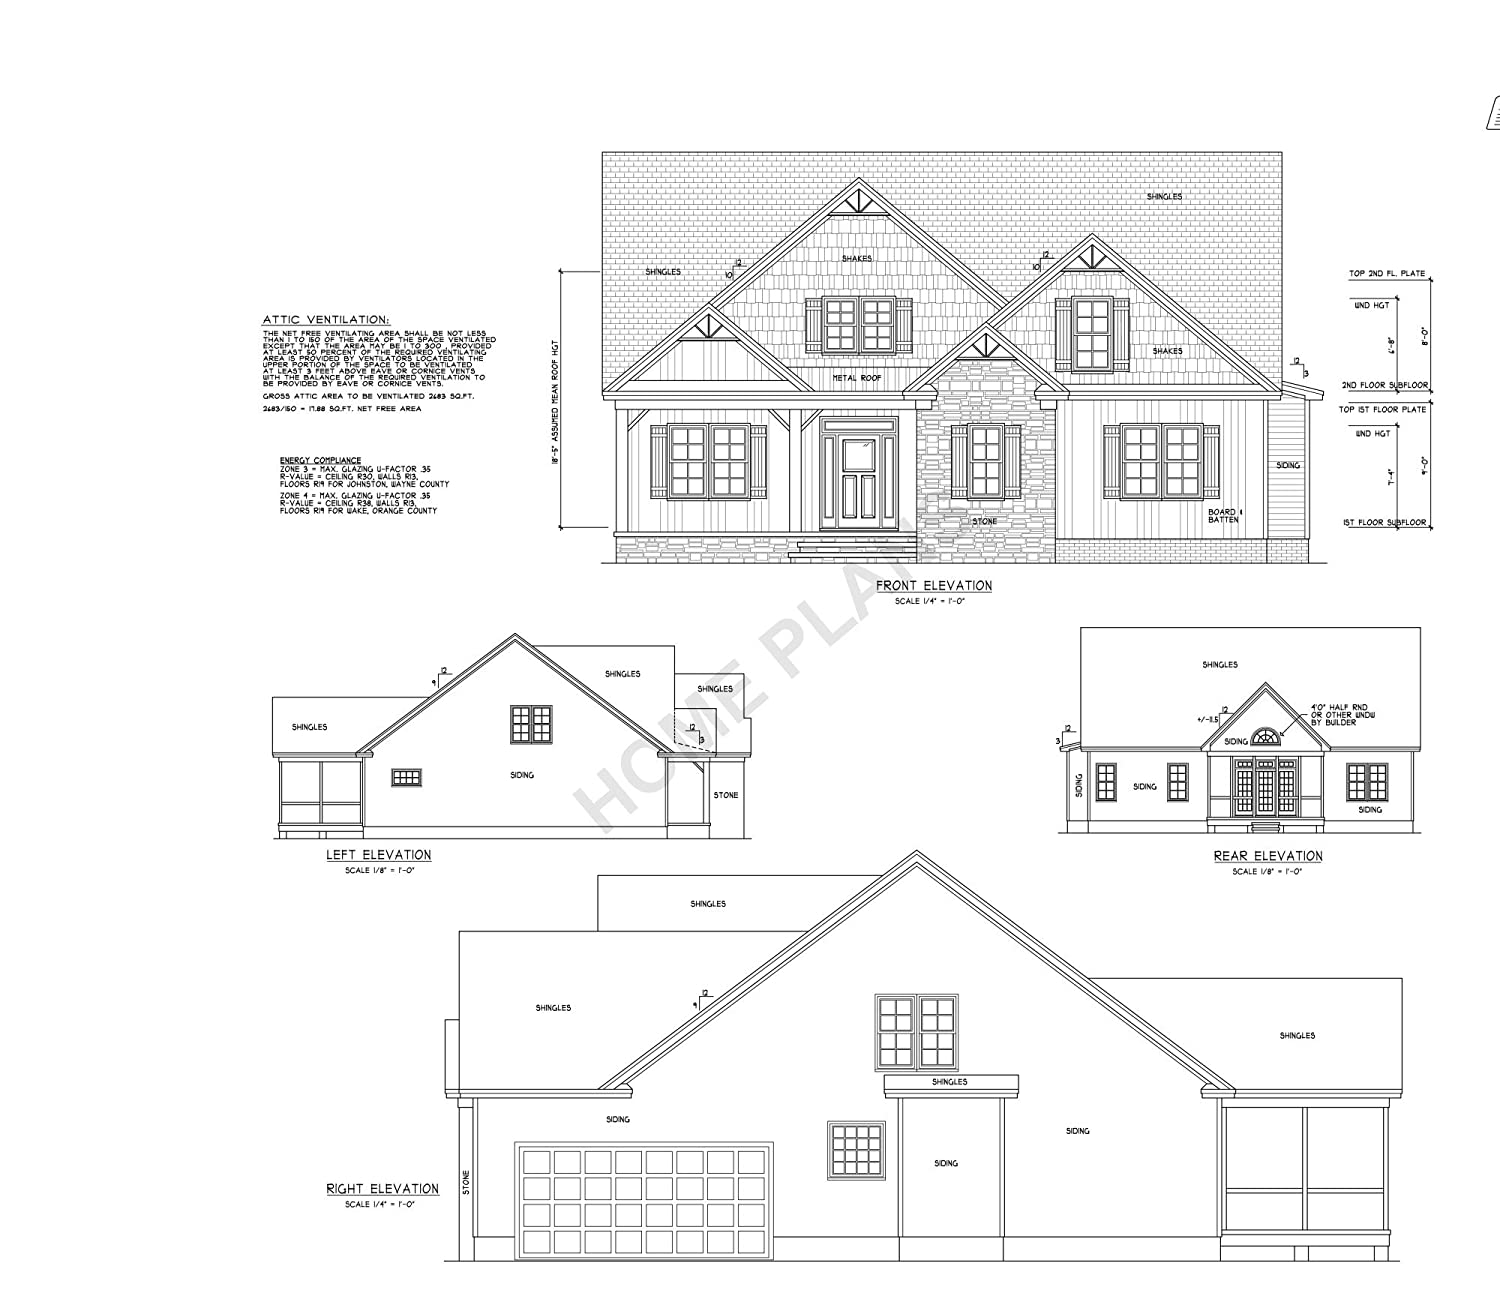 Amazon.com: SQ FT HTD 2477 UNHT 621 Plan # L-2928 Home/House ... on 2nd floor deck plans, 2nd floor signs, 2nd floor insulation, 2nd floor remodeling, 2nd floor design, 2nd floor dallas menu, 2nd floor foundation, 4 floor house plans, 1st floor house plans, 2nd floor concrete, add on house floor plans, 2nd floor building plans, 2nd floor home ideas, open floor house plans, 2nd floor kitchen, second floor plans, 1 floor house plans, 2nd floor addition plans, 2 floor house plans, 2nd floor house ideas,